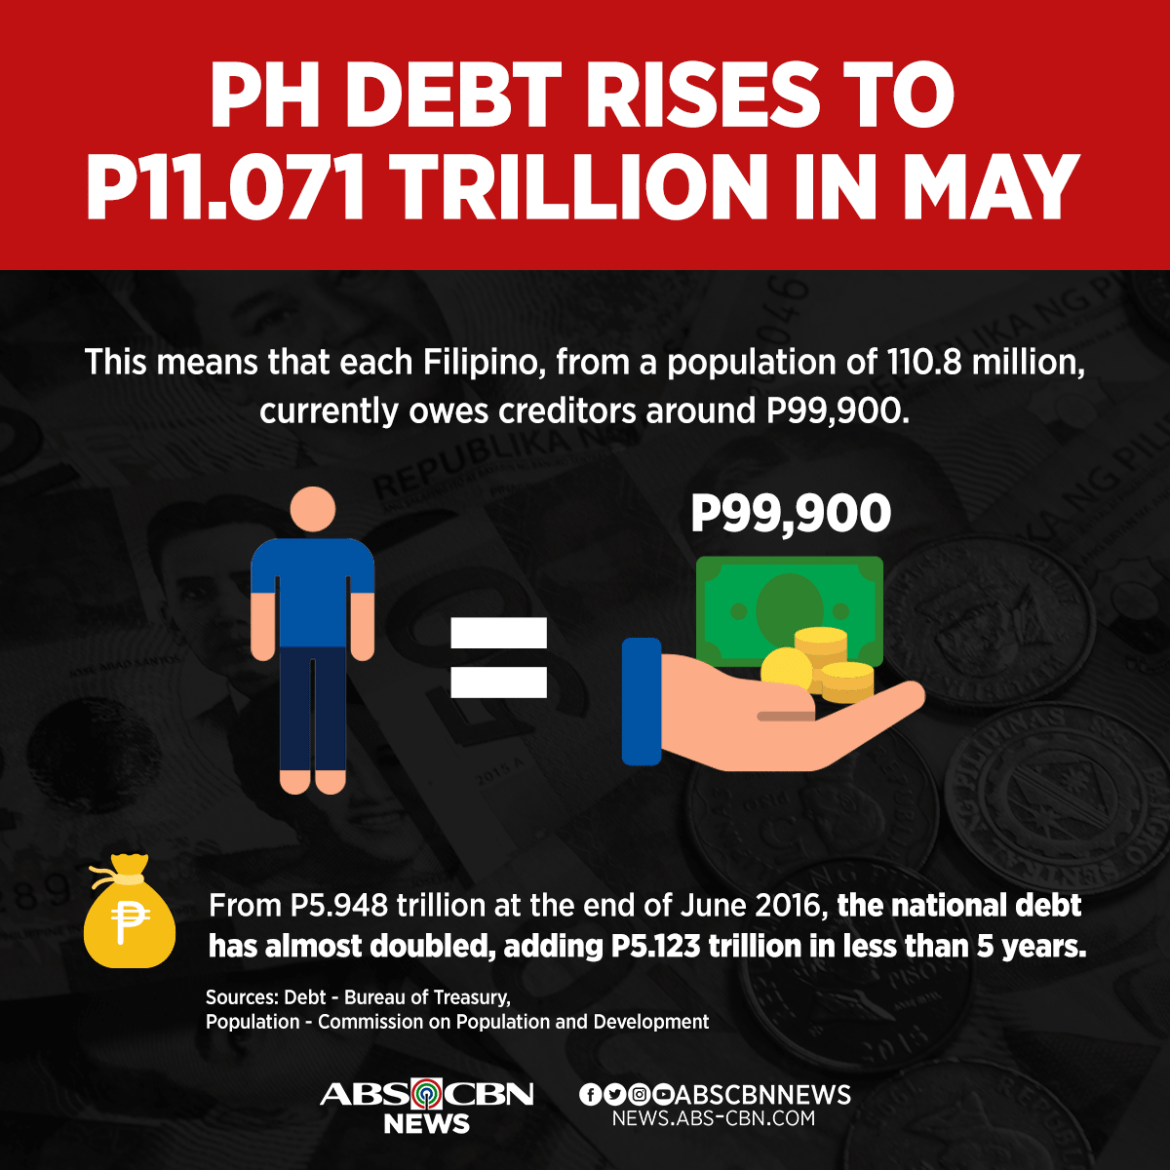 PH outstanding debt climbs to P11.61 Trillion